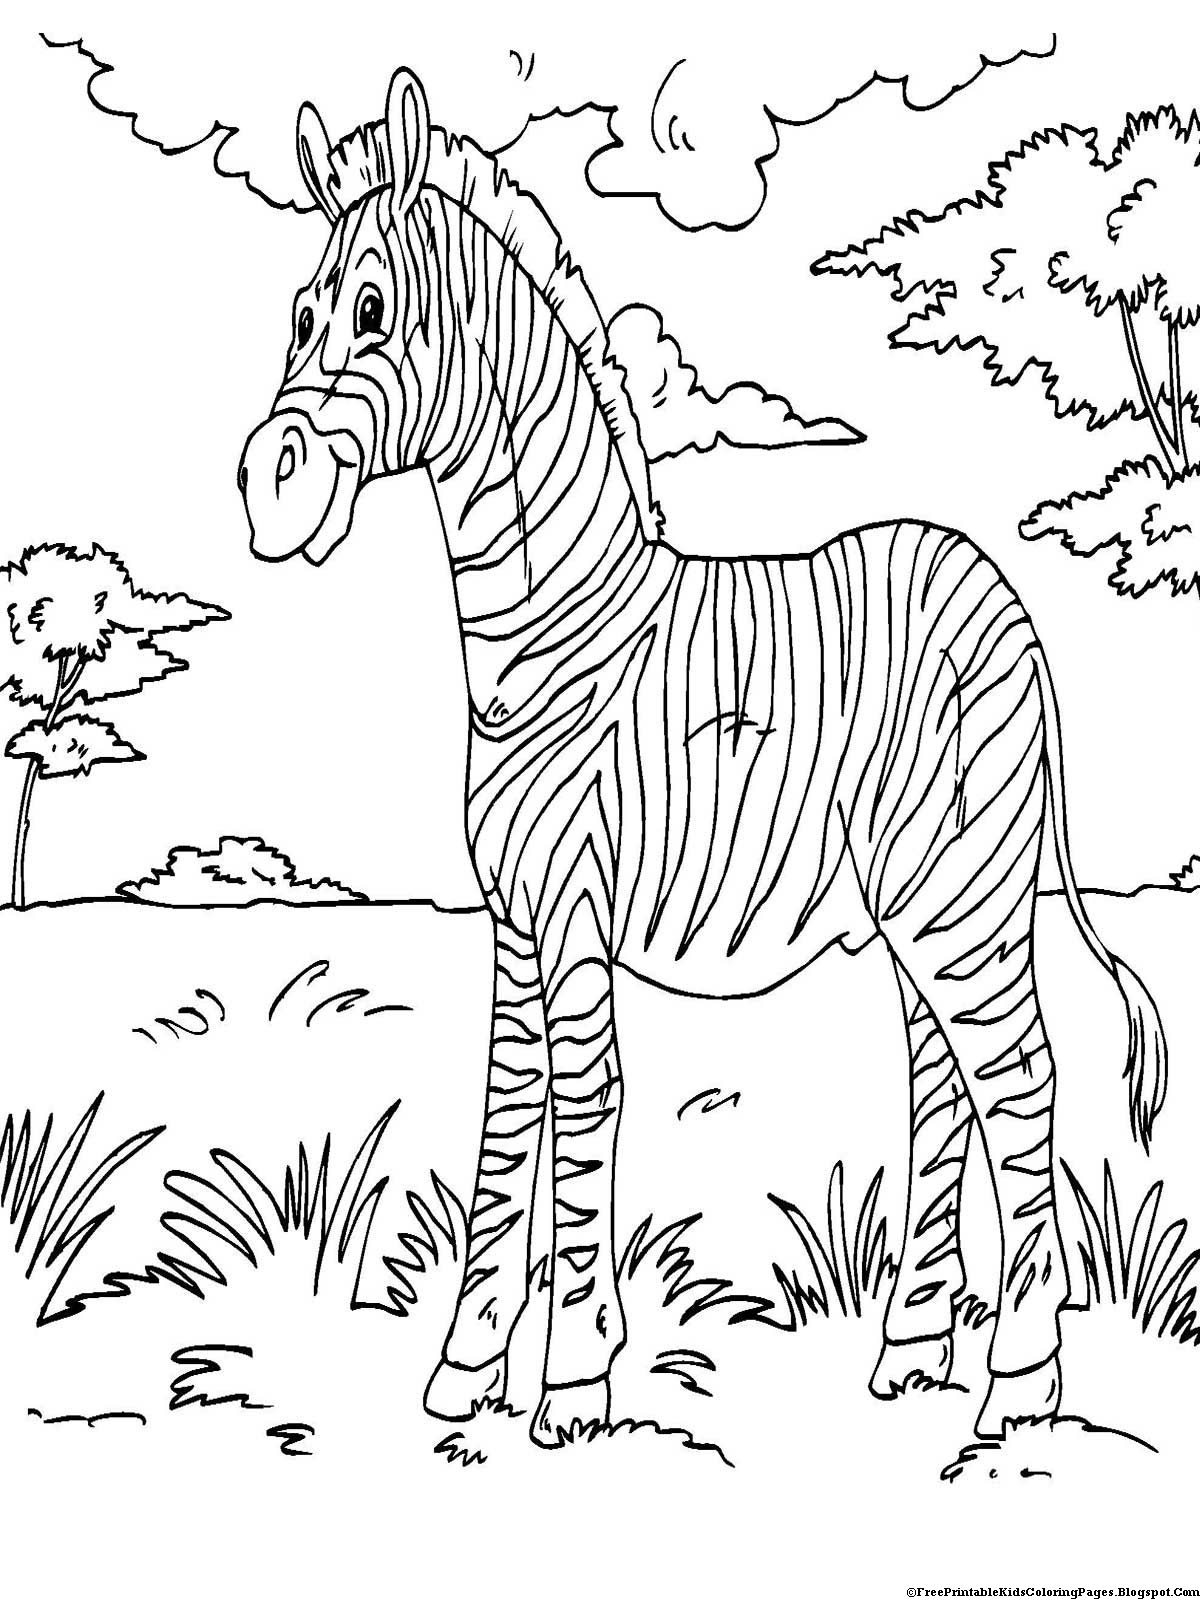 coloring printable pages for kids free printable rainbow coloring pages for kids pages for kids printable coloring